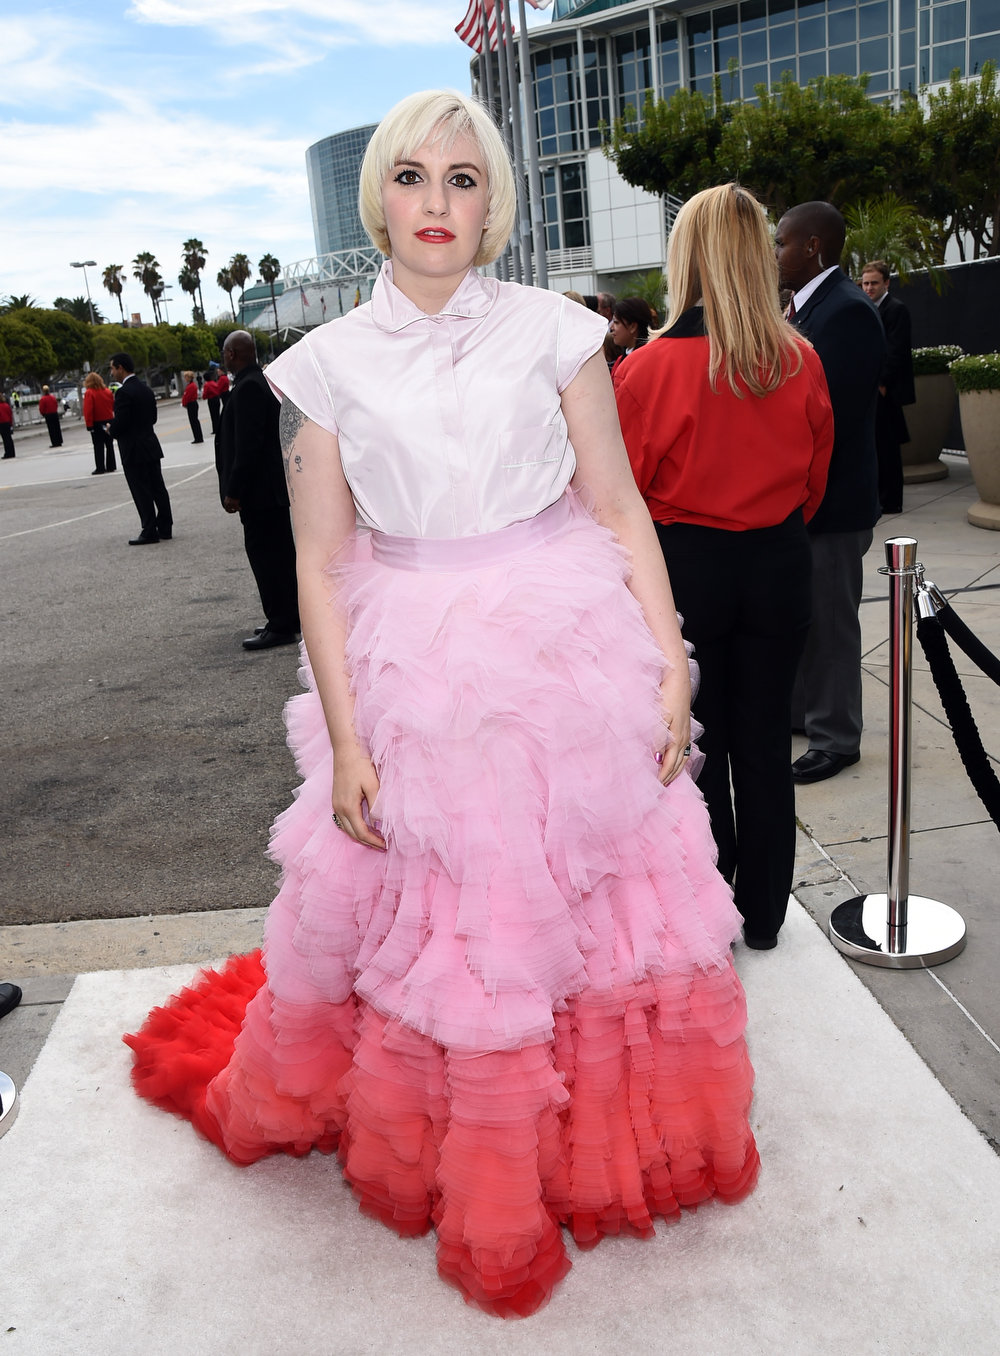 . Actress Lena Dunham attends the 66th Annual Primetime Emmy Awards held at Nokia Theatre L.A. Live on August 25, 2014 in Los Angeles, California.  (Photo by Michael Buckner/Getty Images)